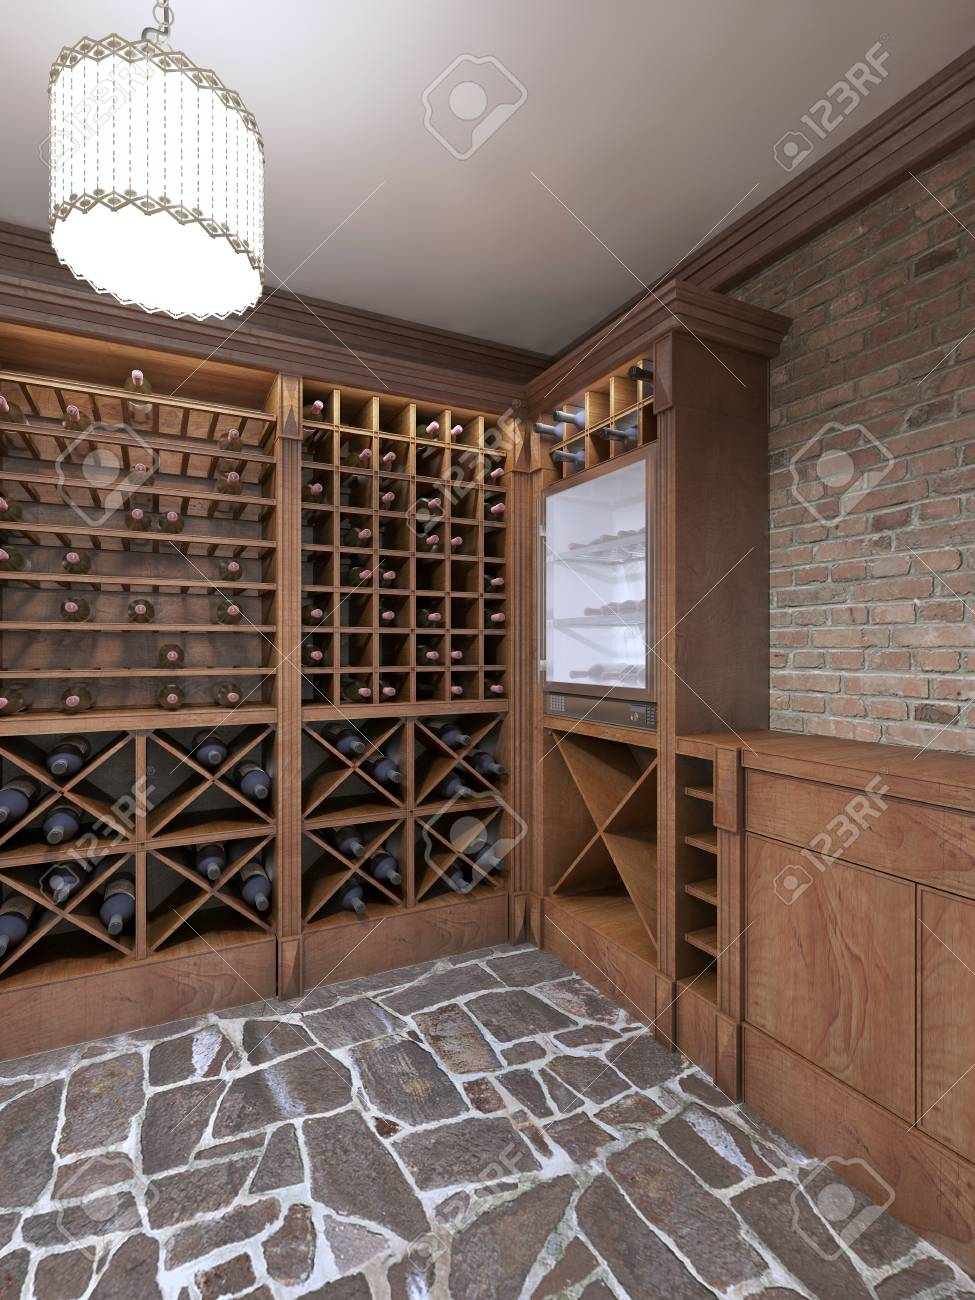 Wine Cellar In The Basement Of The House In A Rustic Style Open Stock Photo Picture And Royalty Free Image Image 65942365